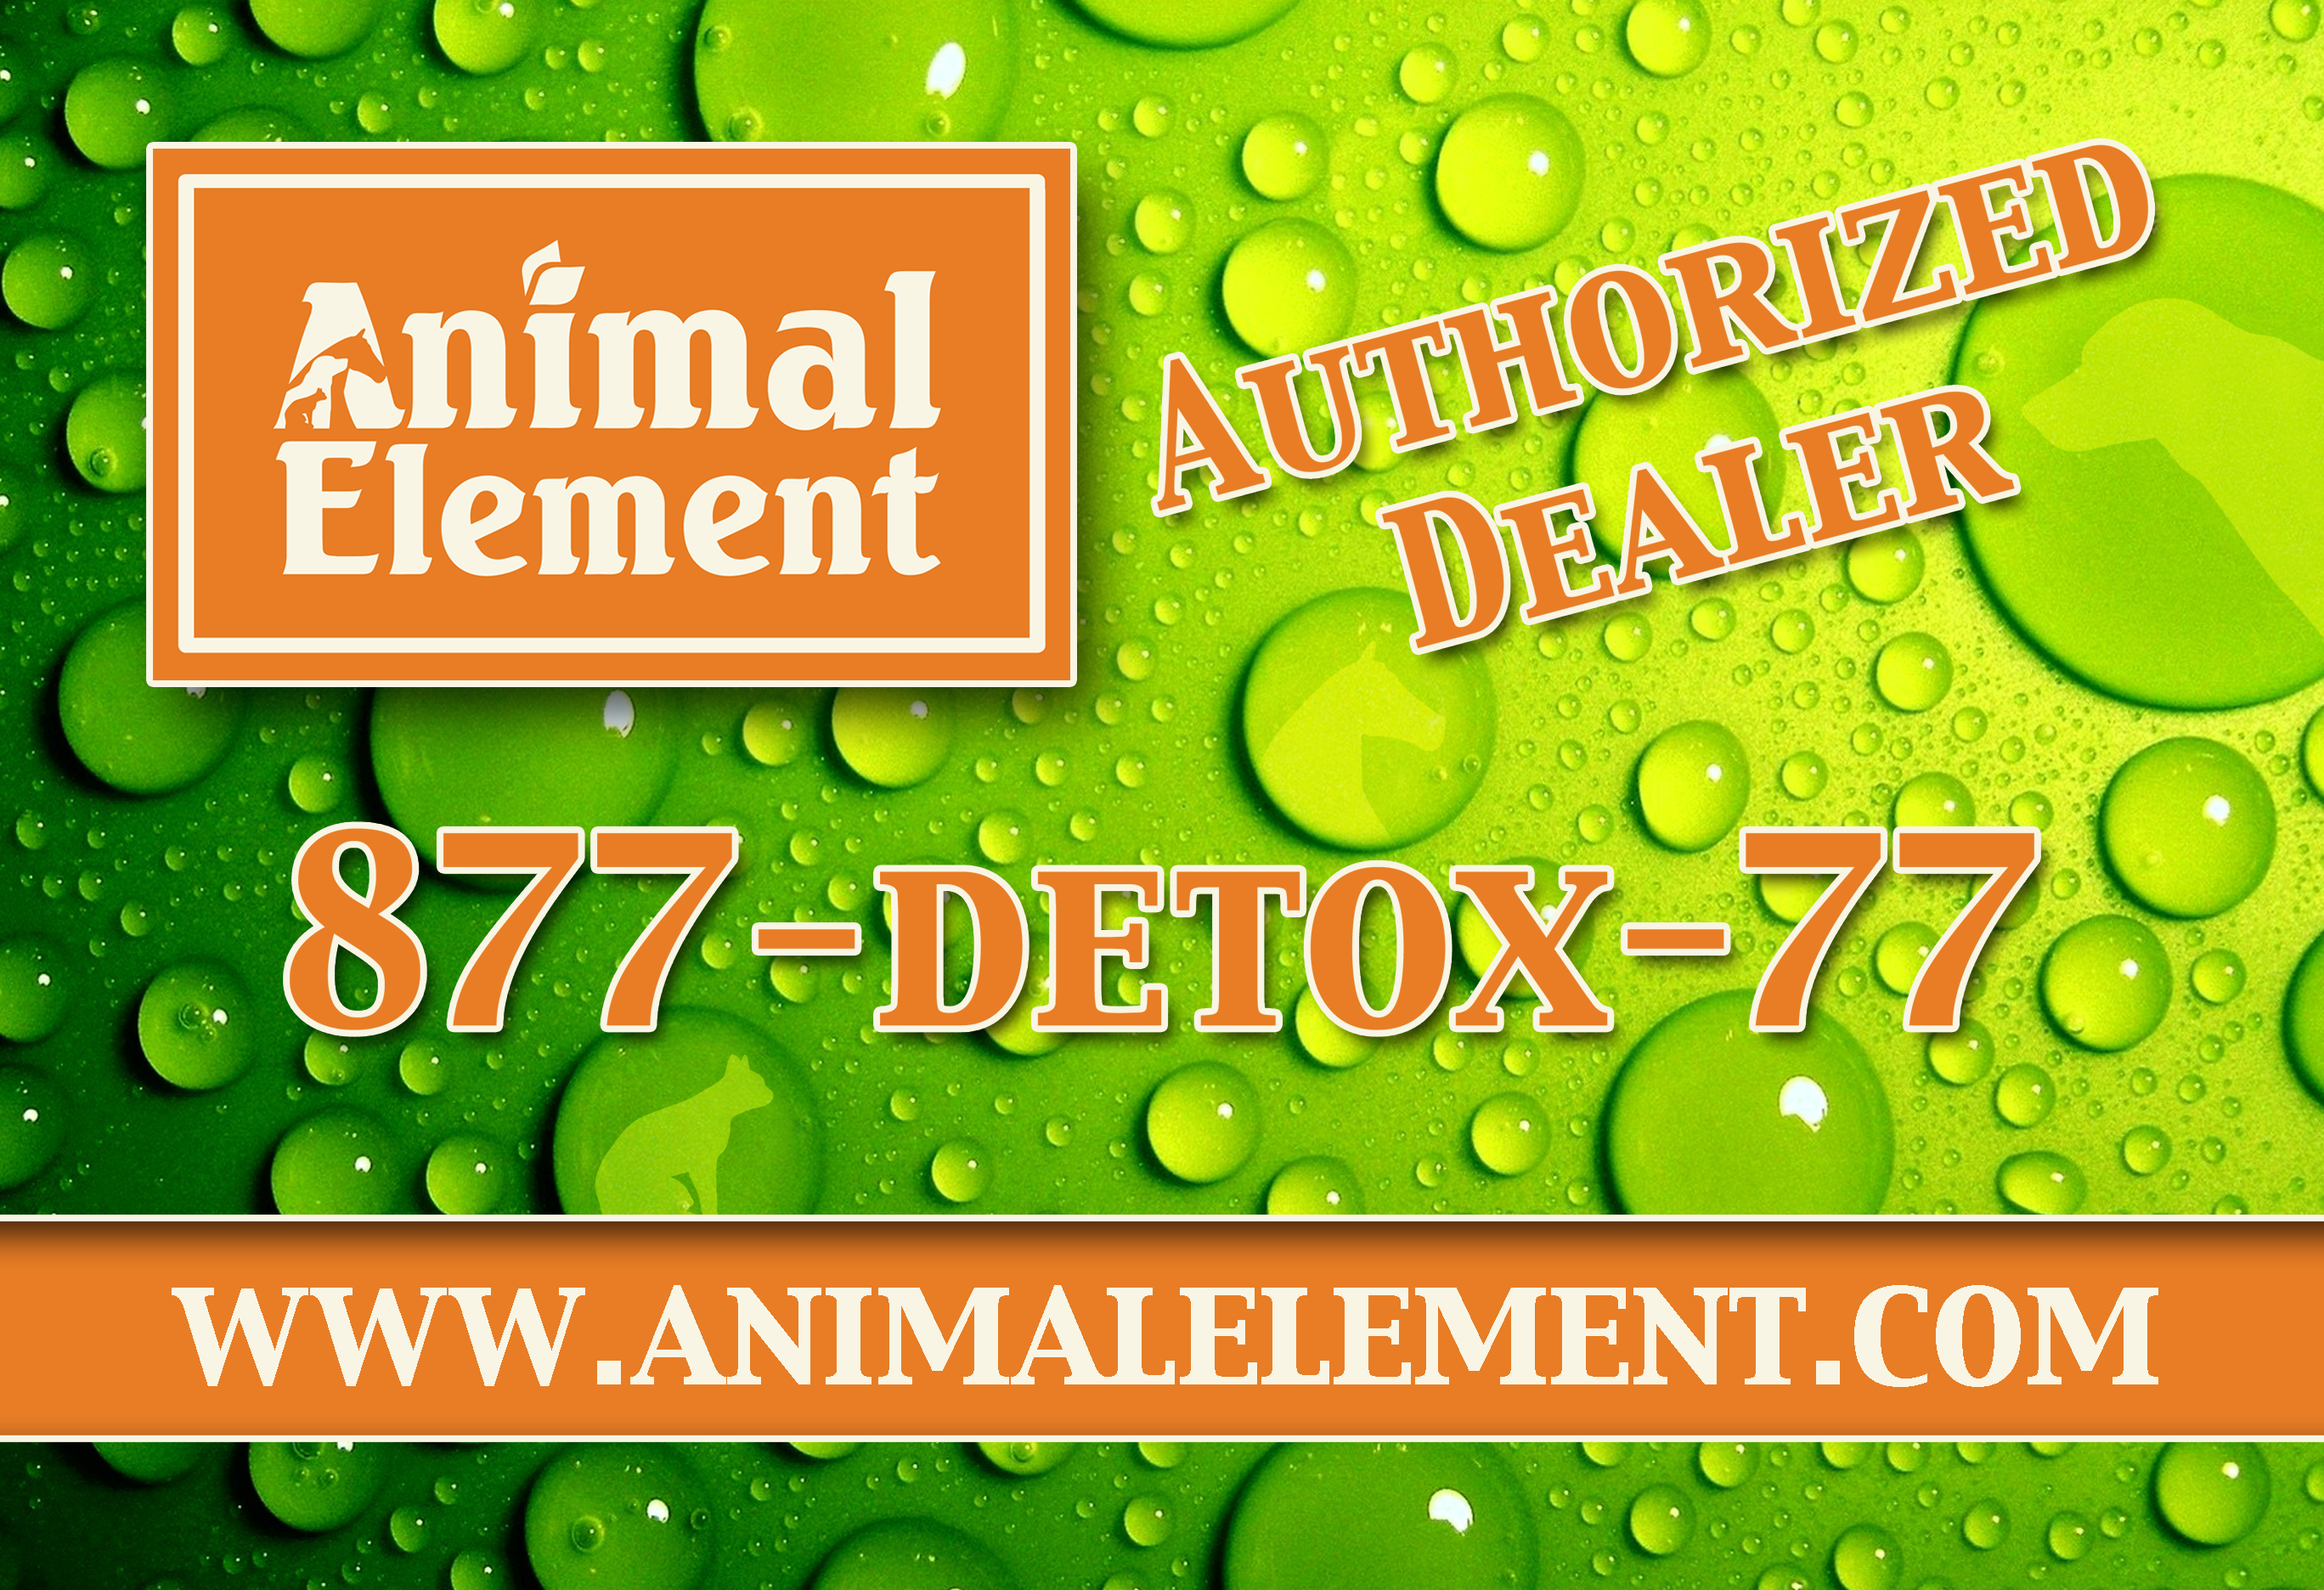 Animal Element Dealer banner. Place your name, phone number and coupon code for customer to see at events, shows, rodeos and barns.